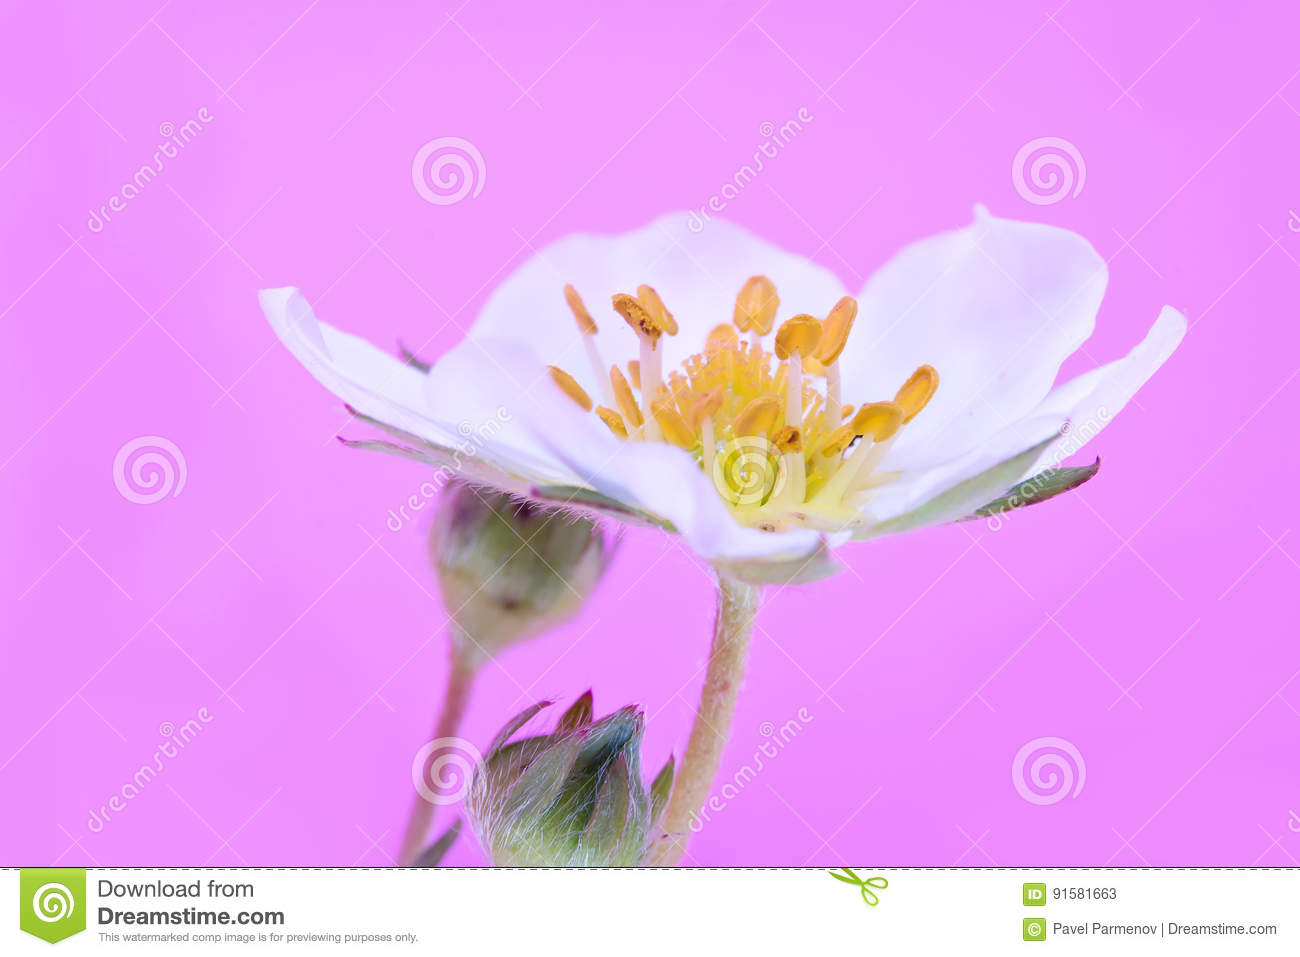 Flower Of A Strawberry Plant Stock Image Image Of Seed Pink 91581663